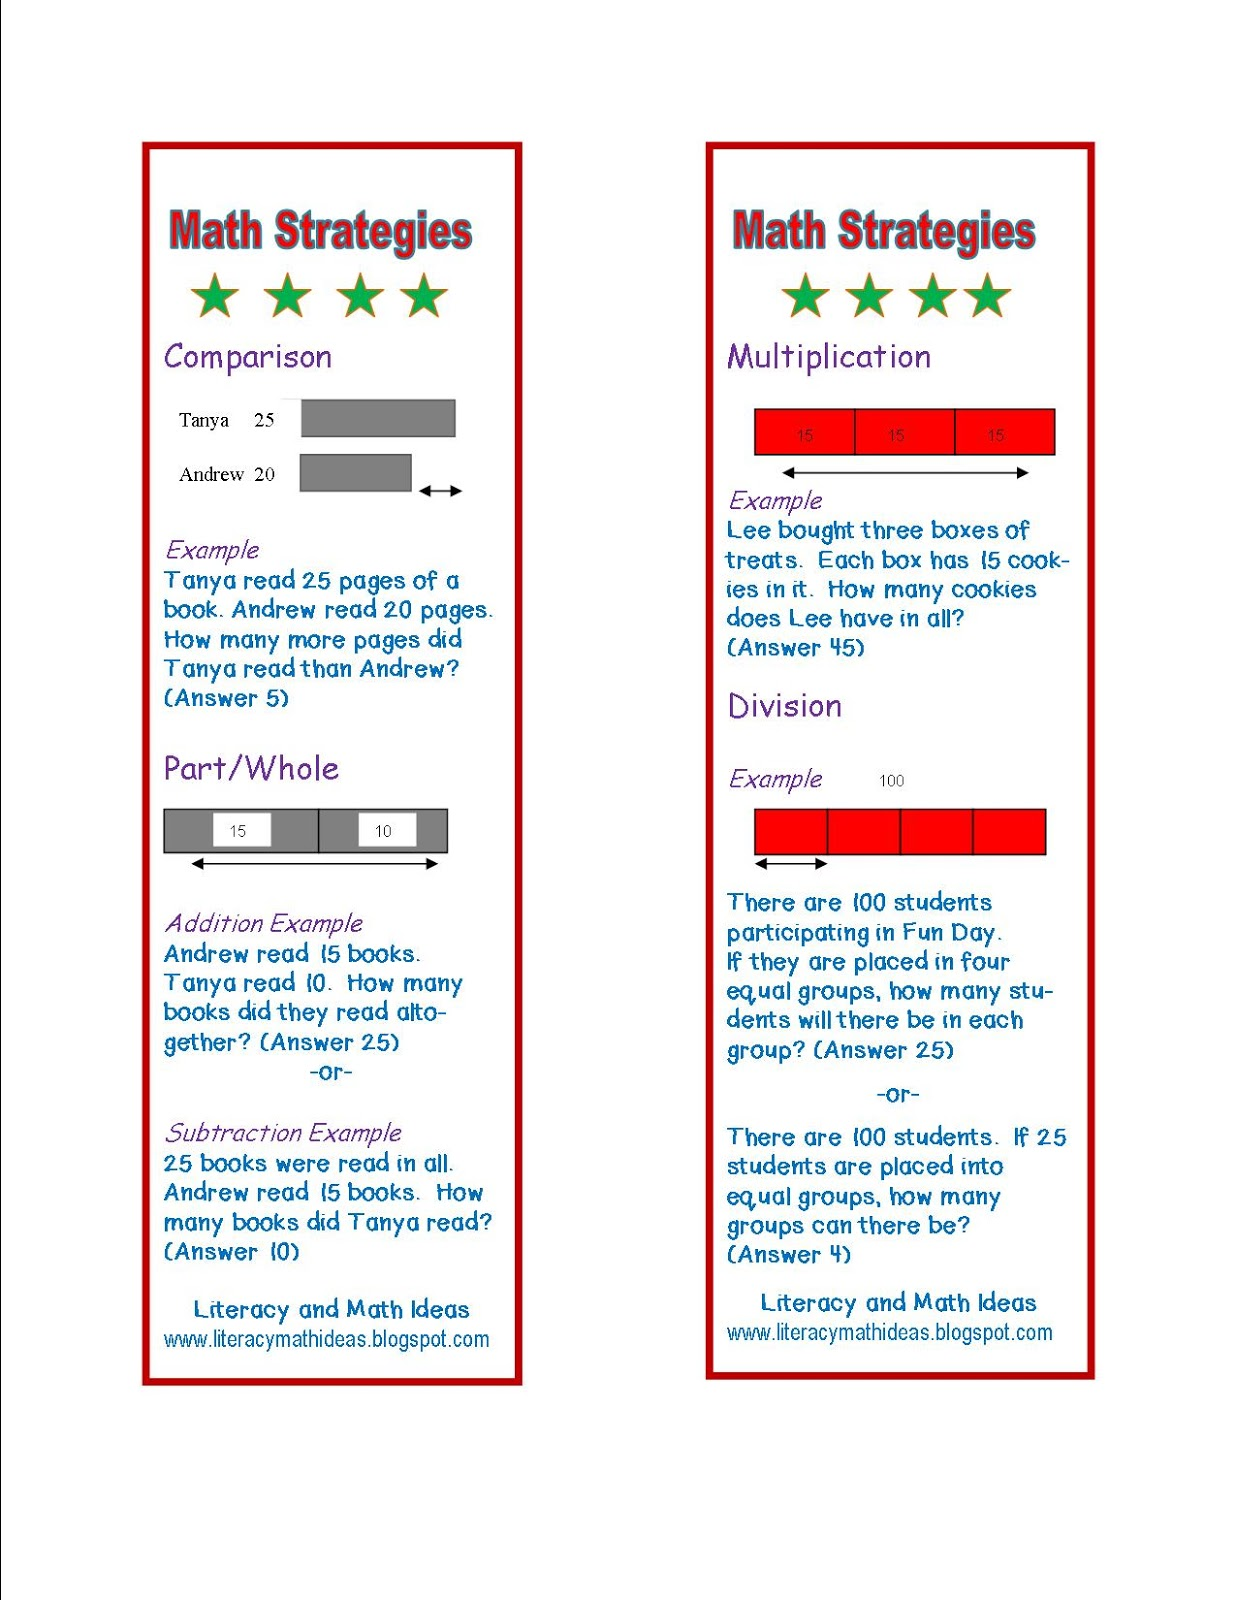 math strategy for sixth grade students essay Sixth grade (grade 6) problem solving strategies questions you can create printable tests and worksheets from these grade 6 problem solving strategies questions select one or more questions using the checkboxes above each question.